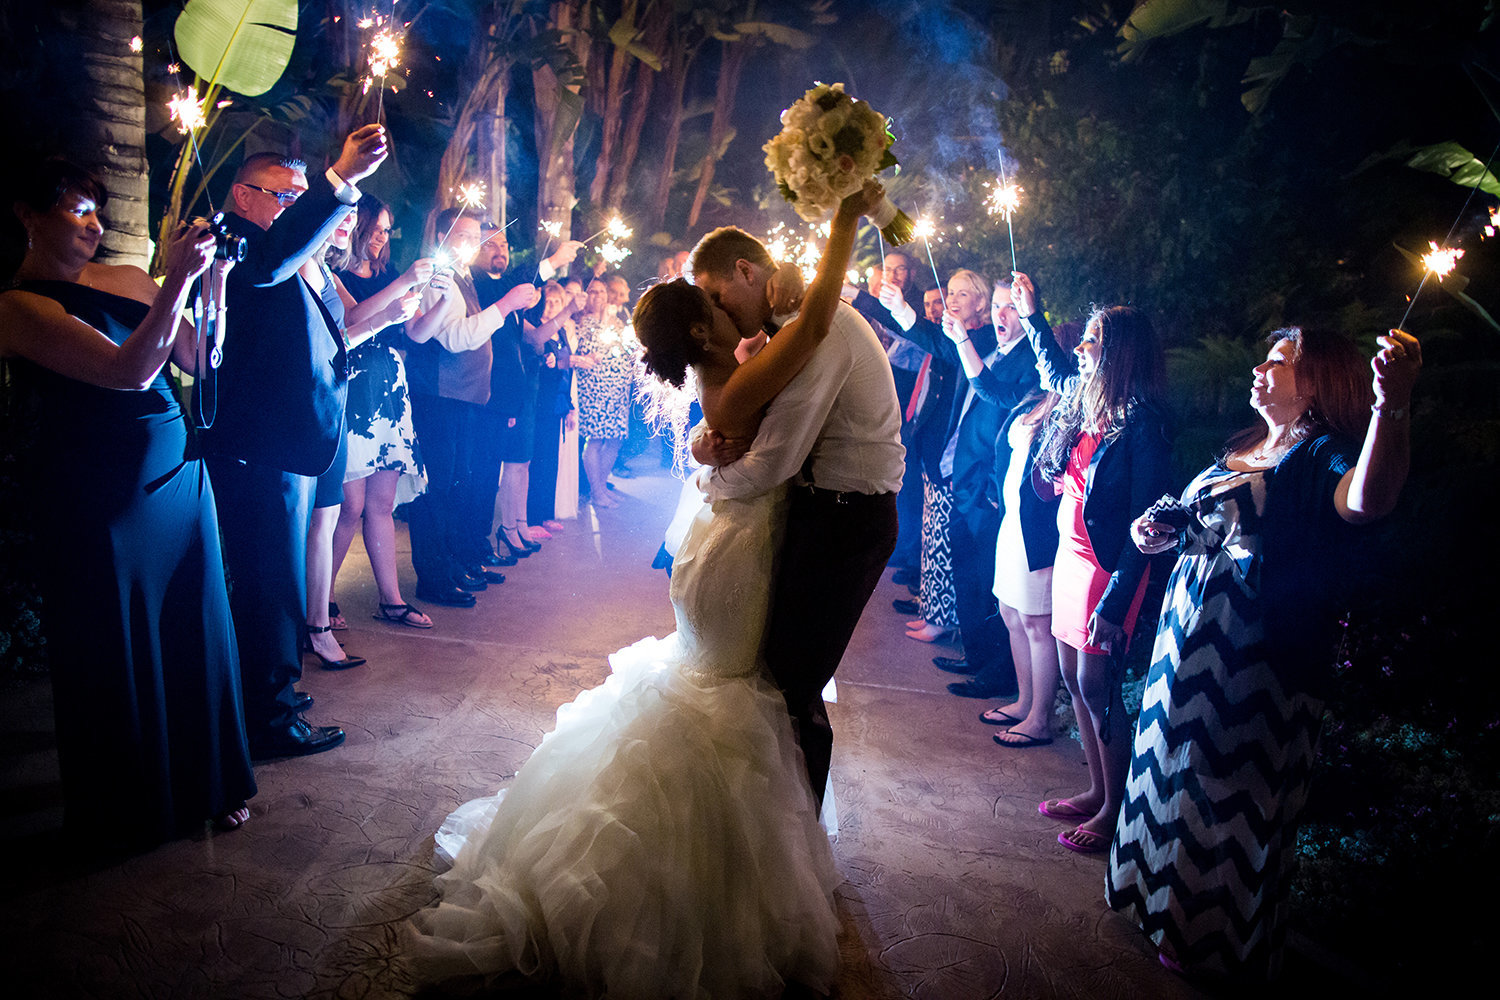 Amazing grand exit photo with sparklers of the bride and groom